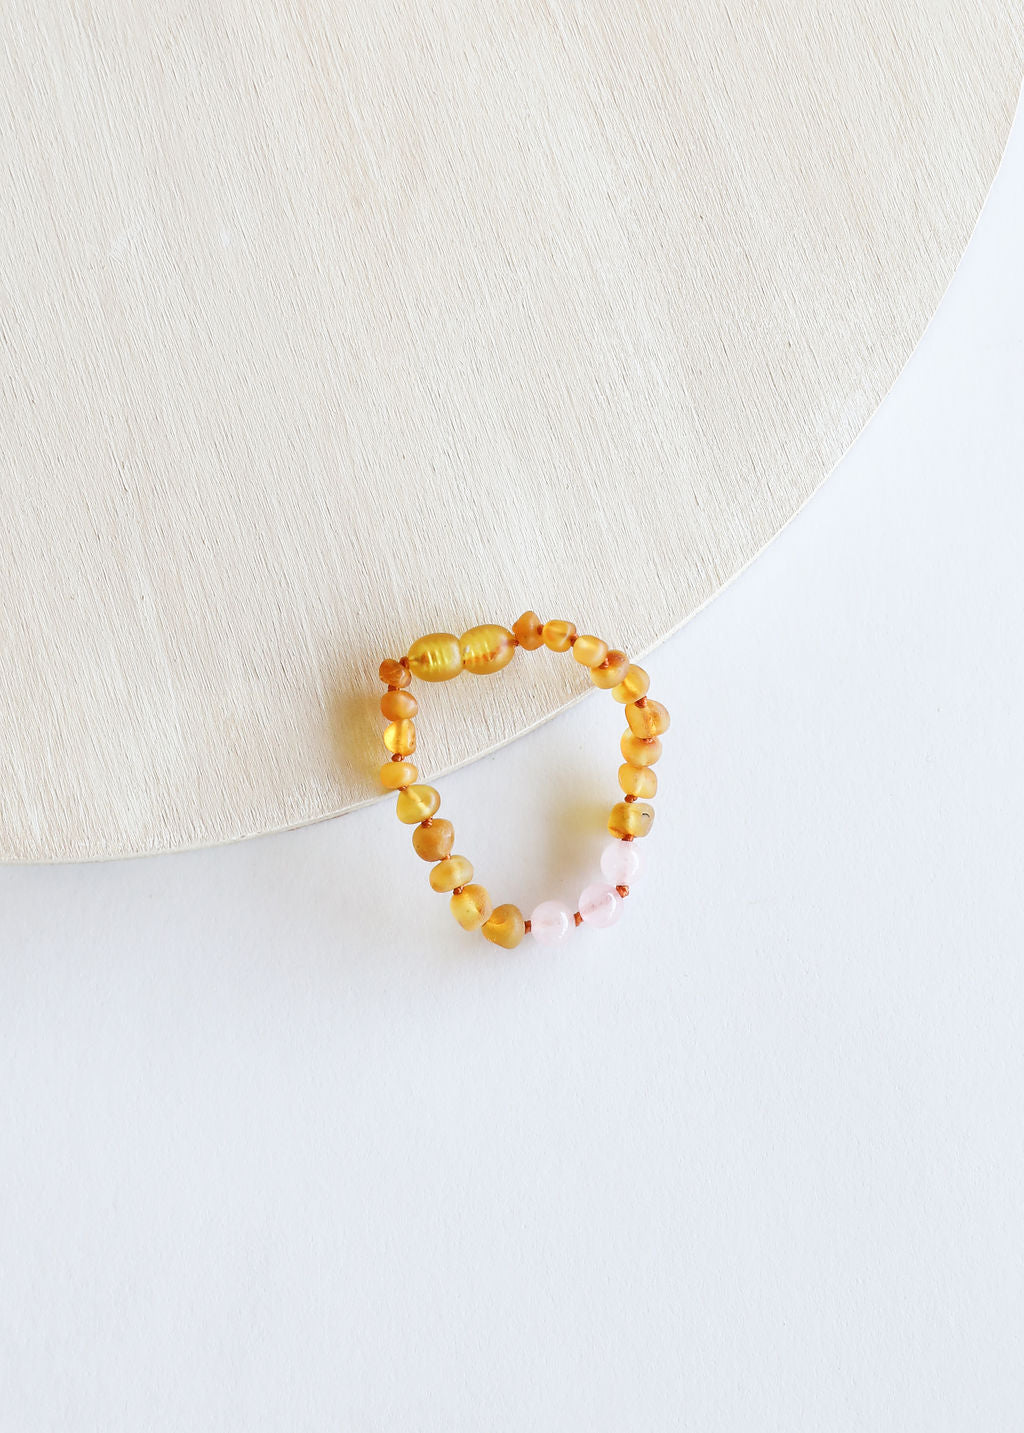 Raw Honey Amber + Rose Quartz || Anklet or Bracelet